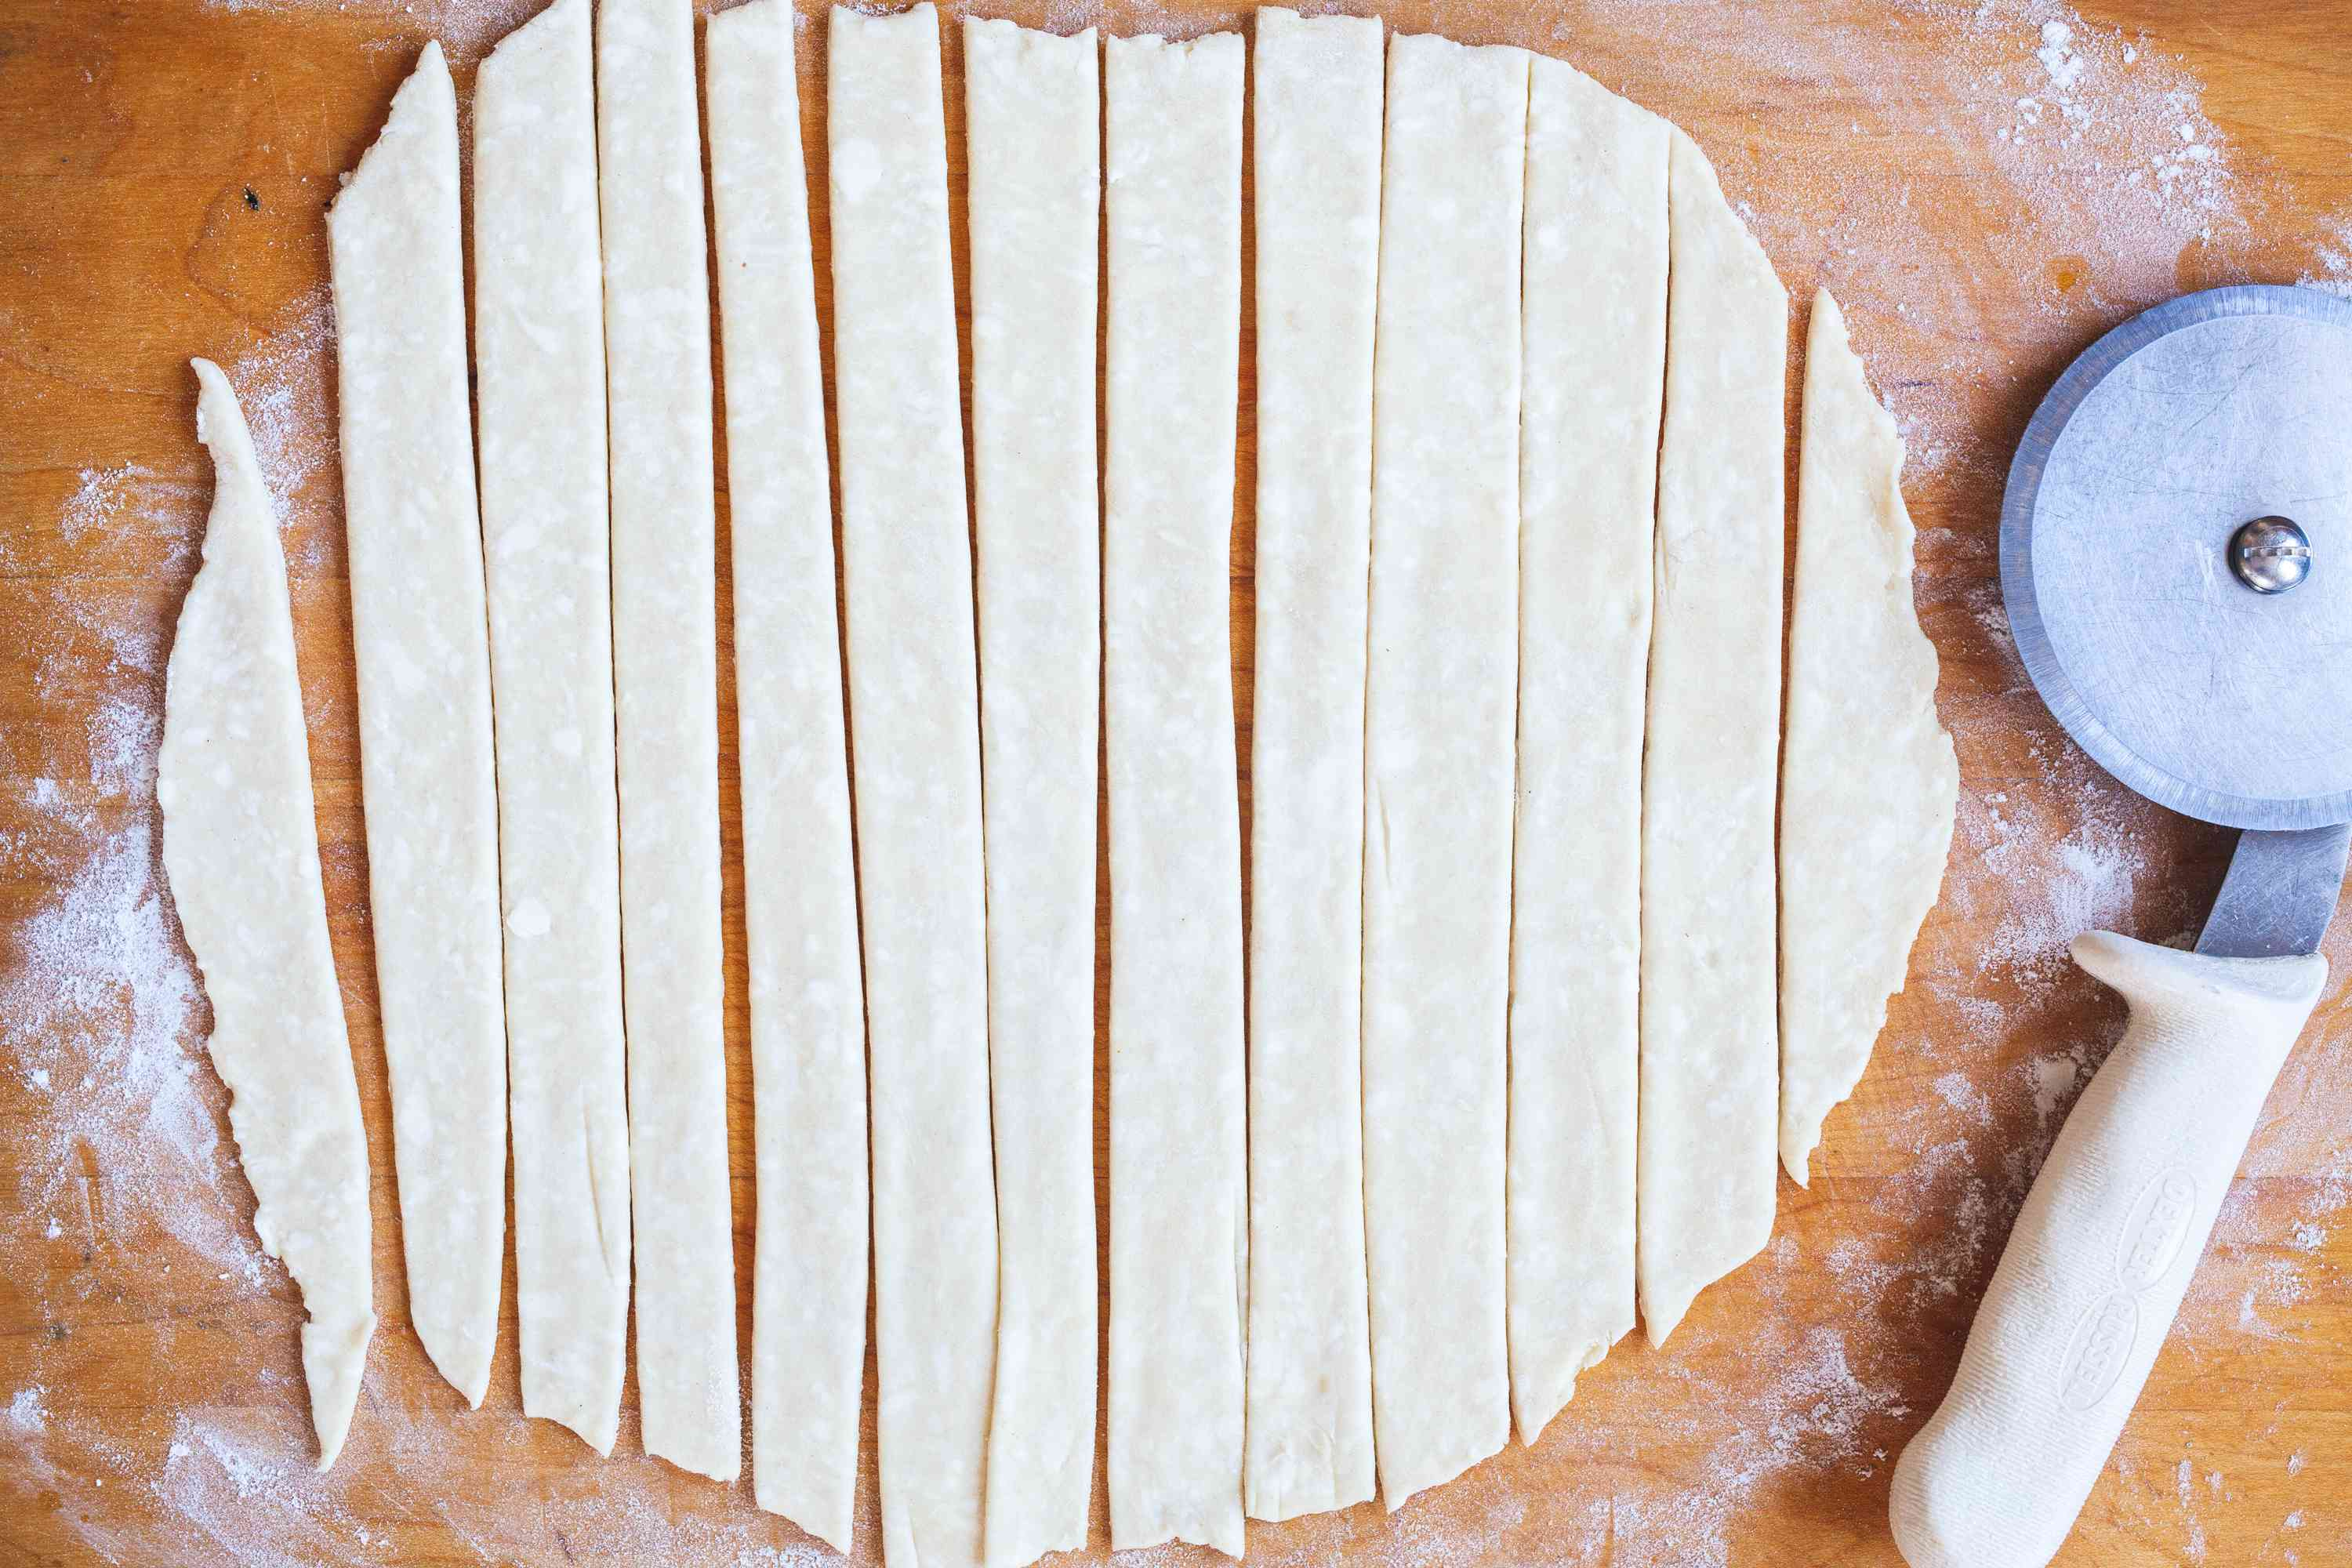 Cutting a pie crust into strips to show how to make a lattice crust.